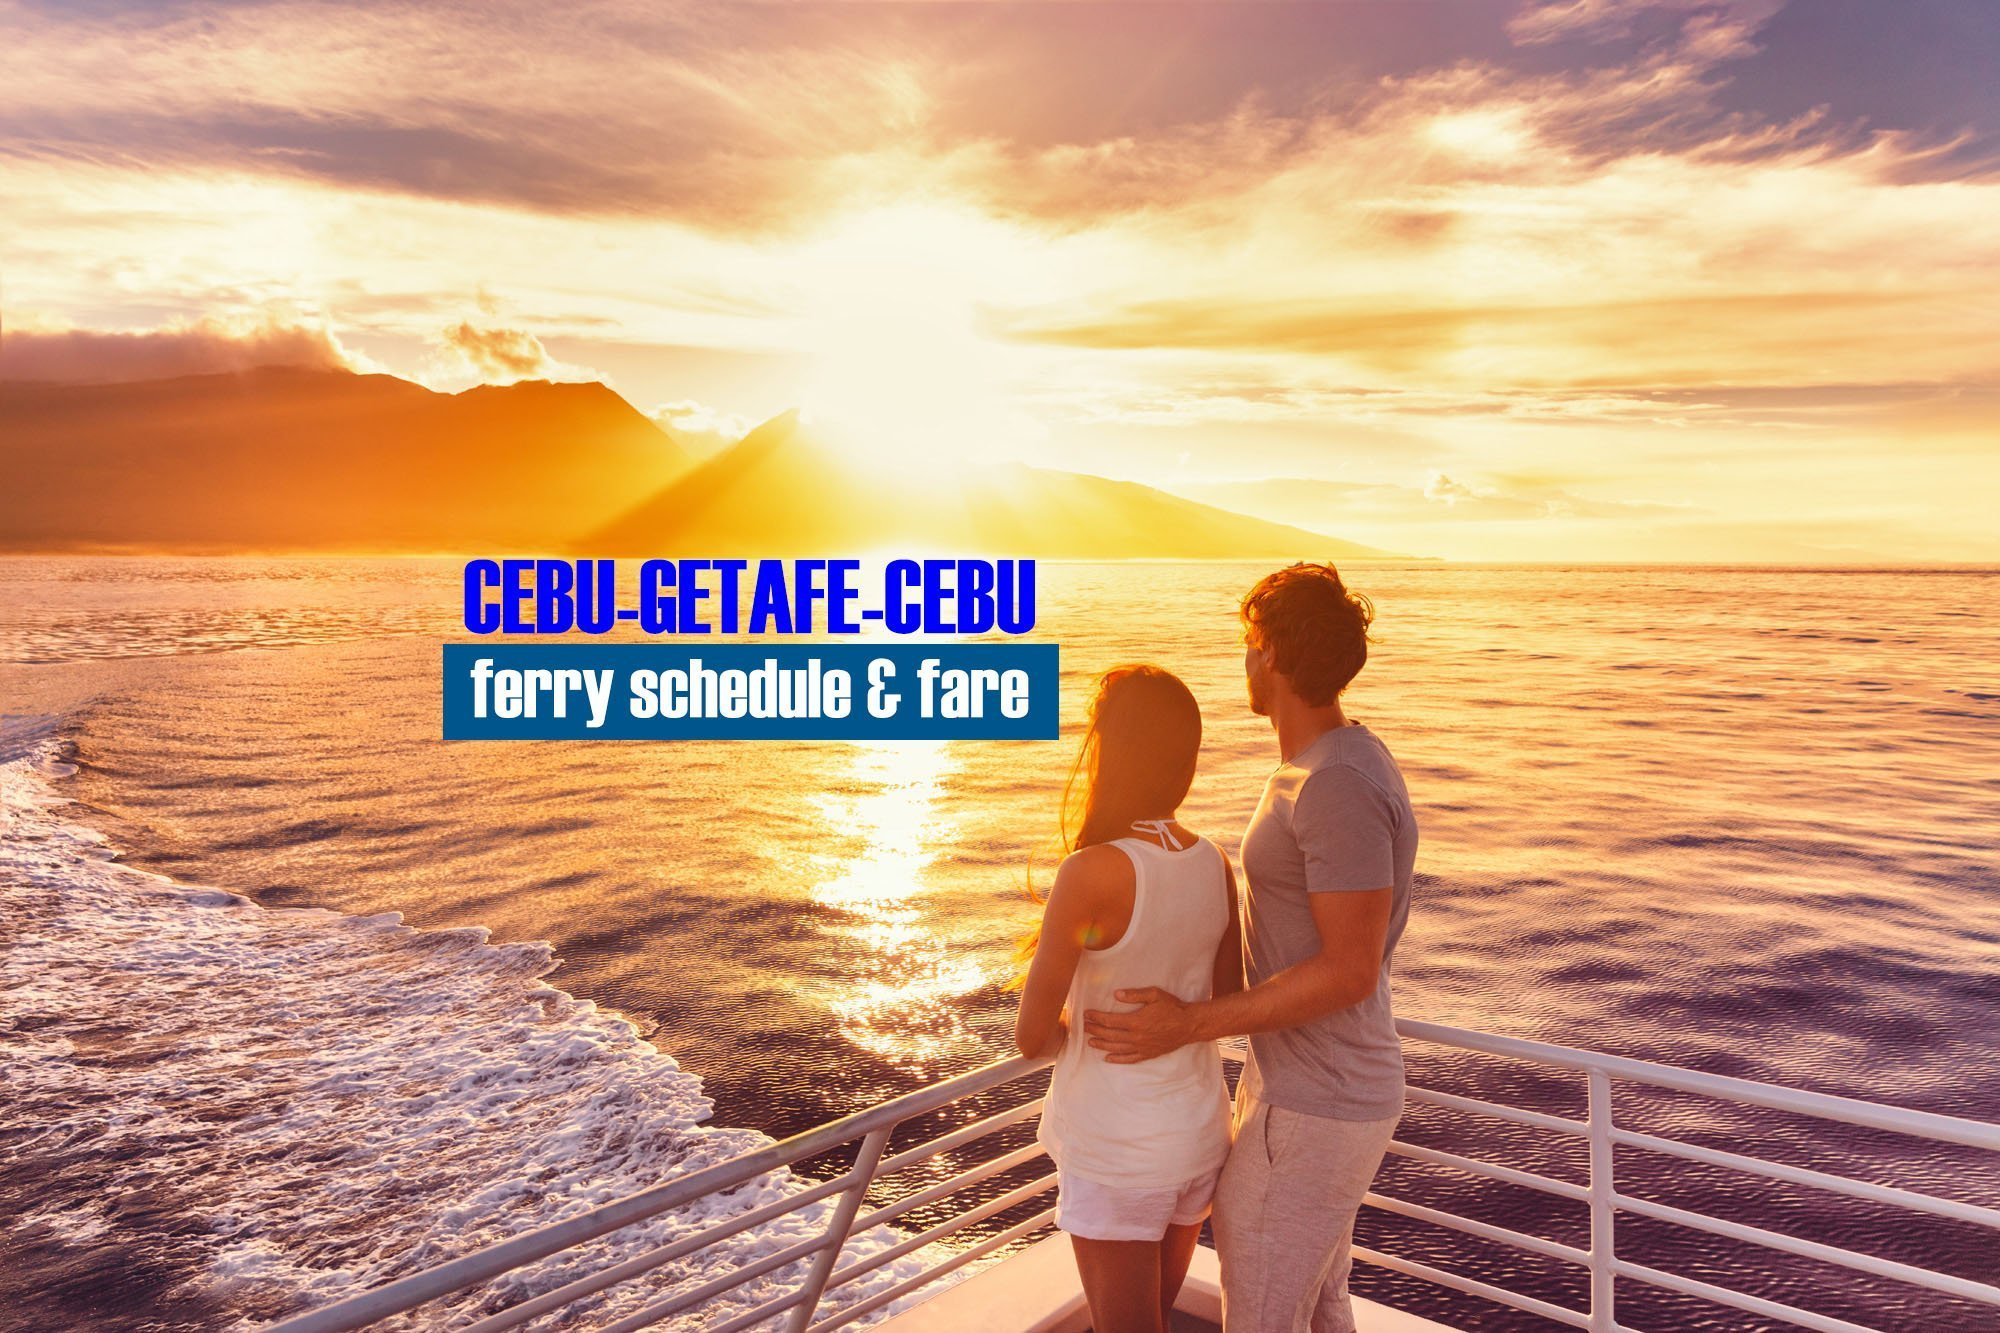 Cebu to Getafe: 2019 Ferry Schedule and Fare